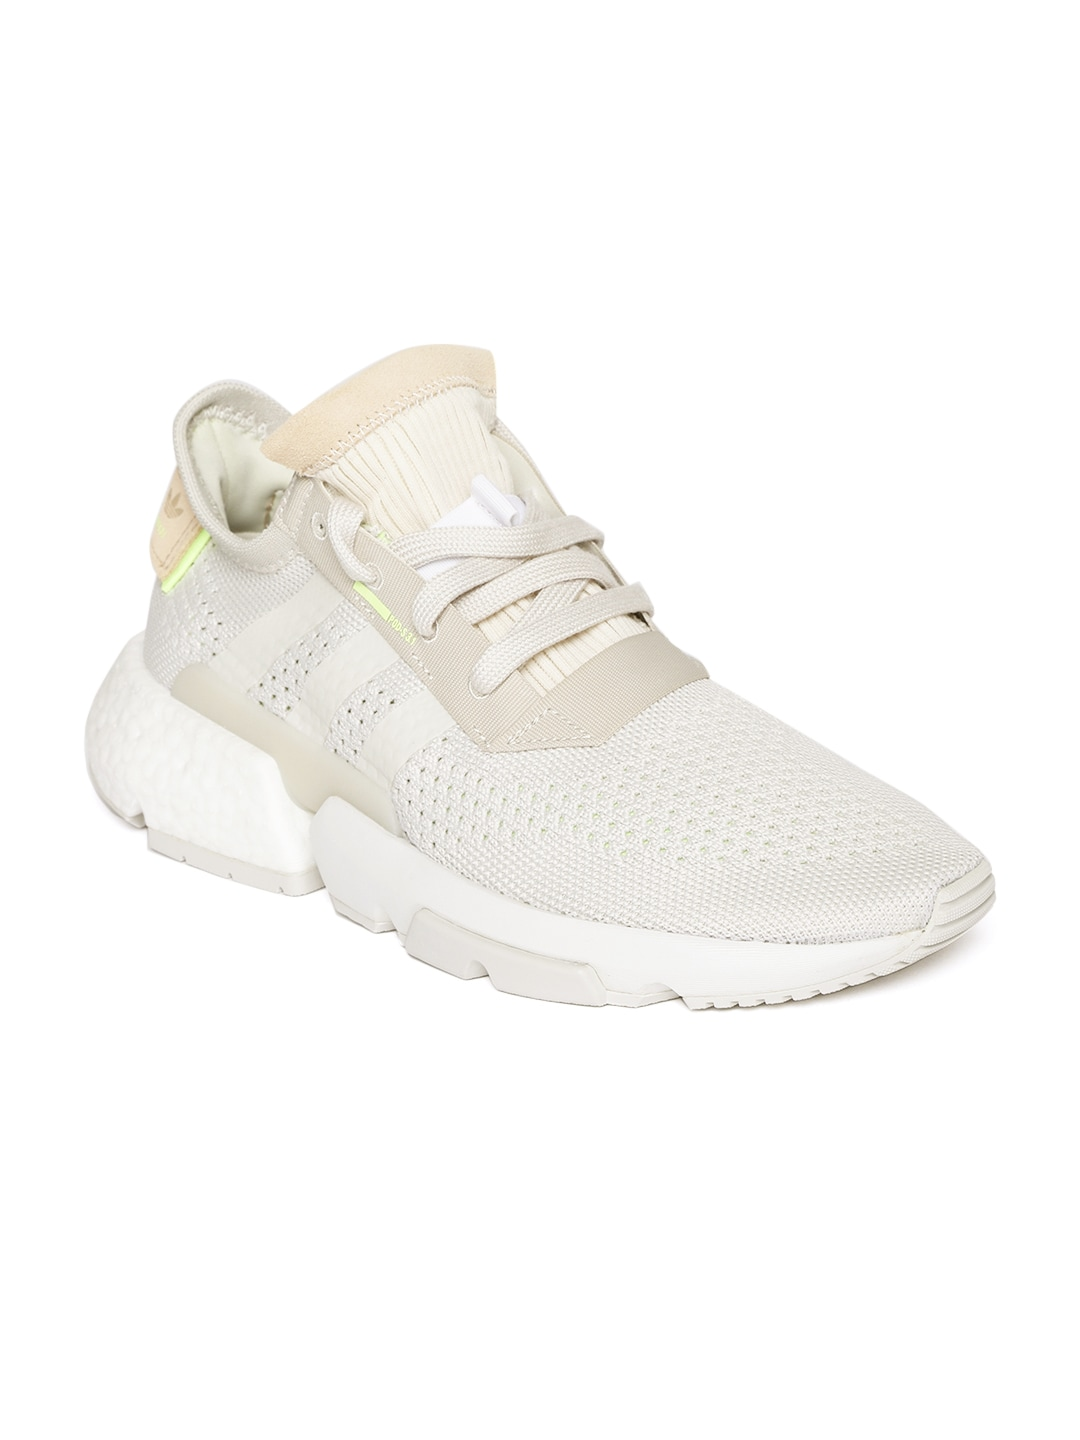 d605e0ac4e Adidas Shoes - Buy Adidas Shoes for Men   Women Online - Myntra